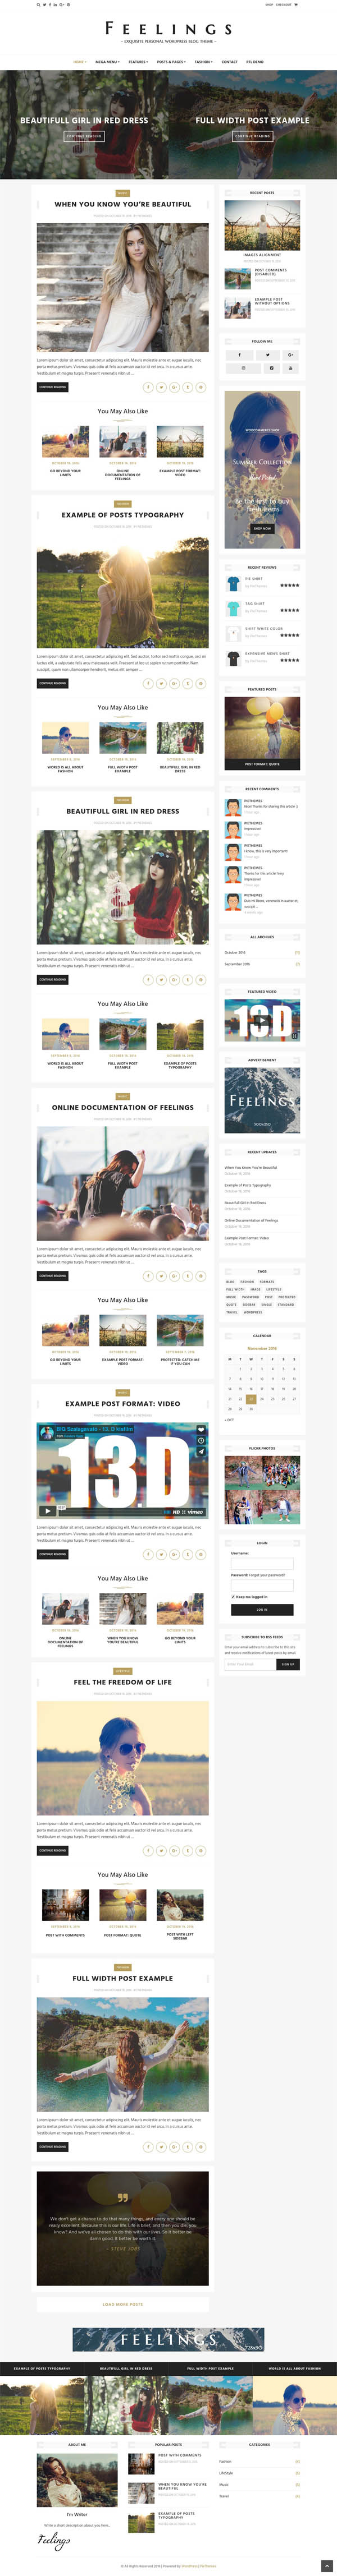 Feelings – Exquisite Personal WordPress Blog Theme